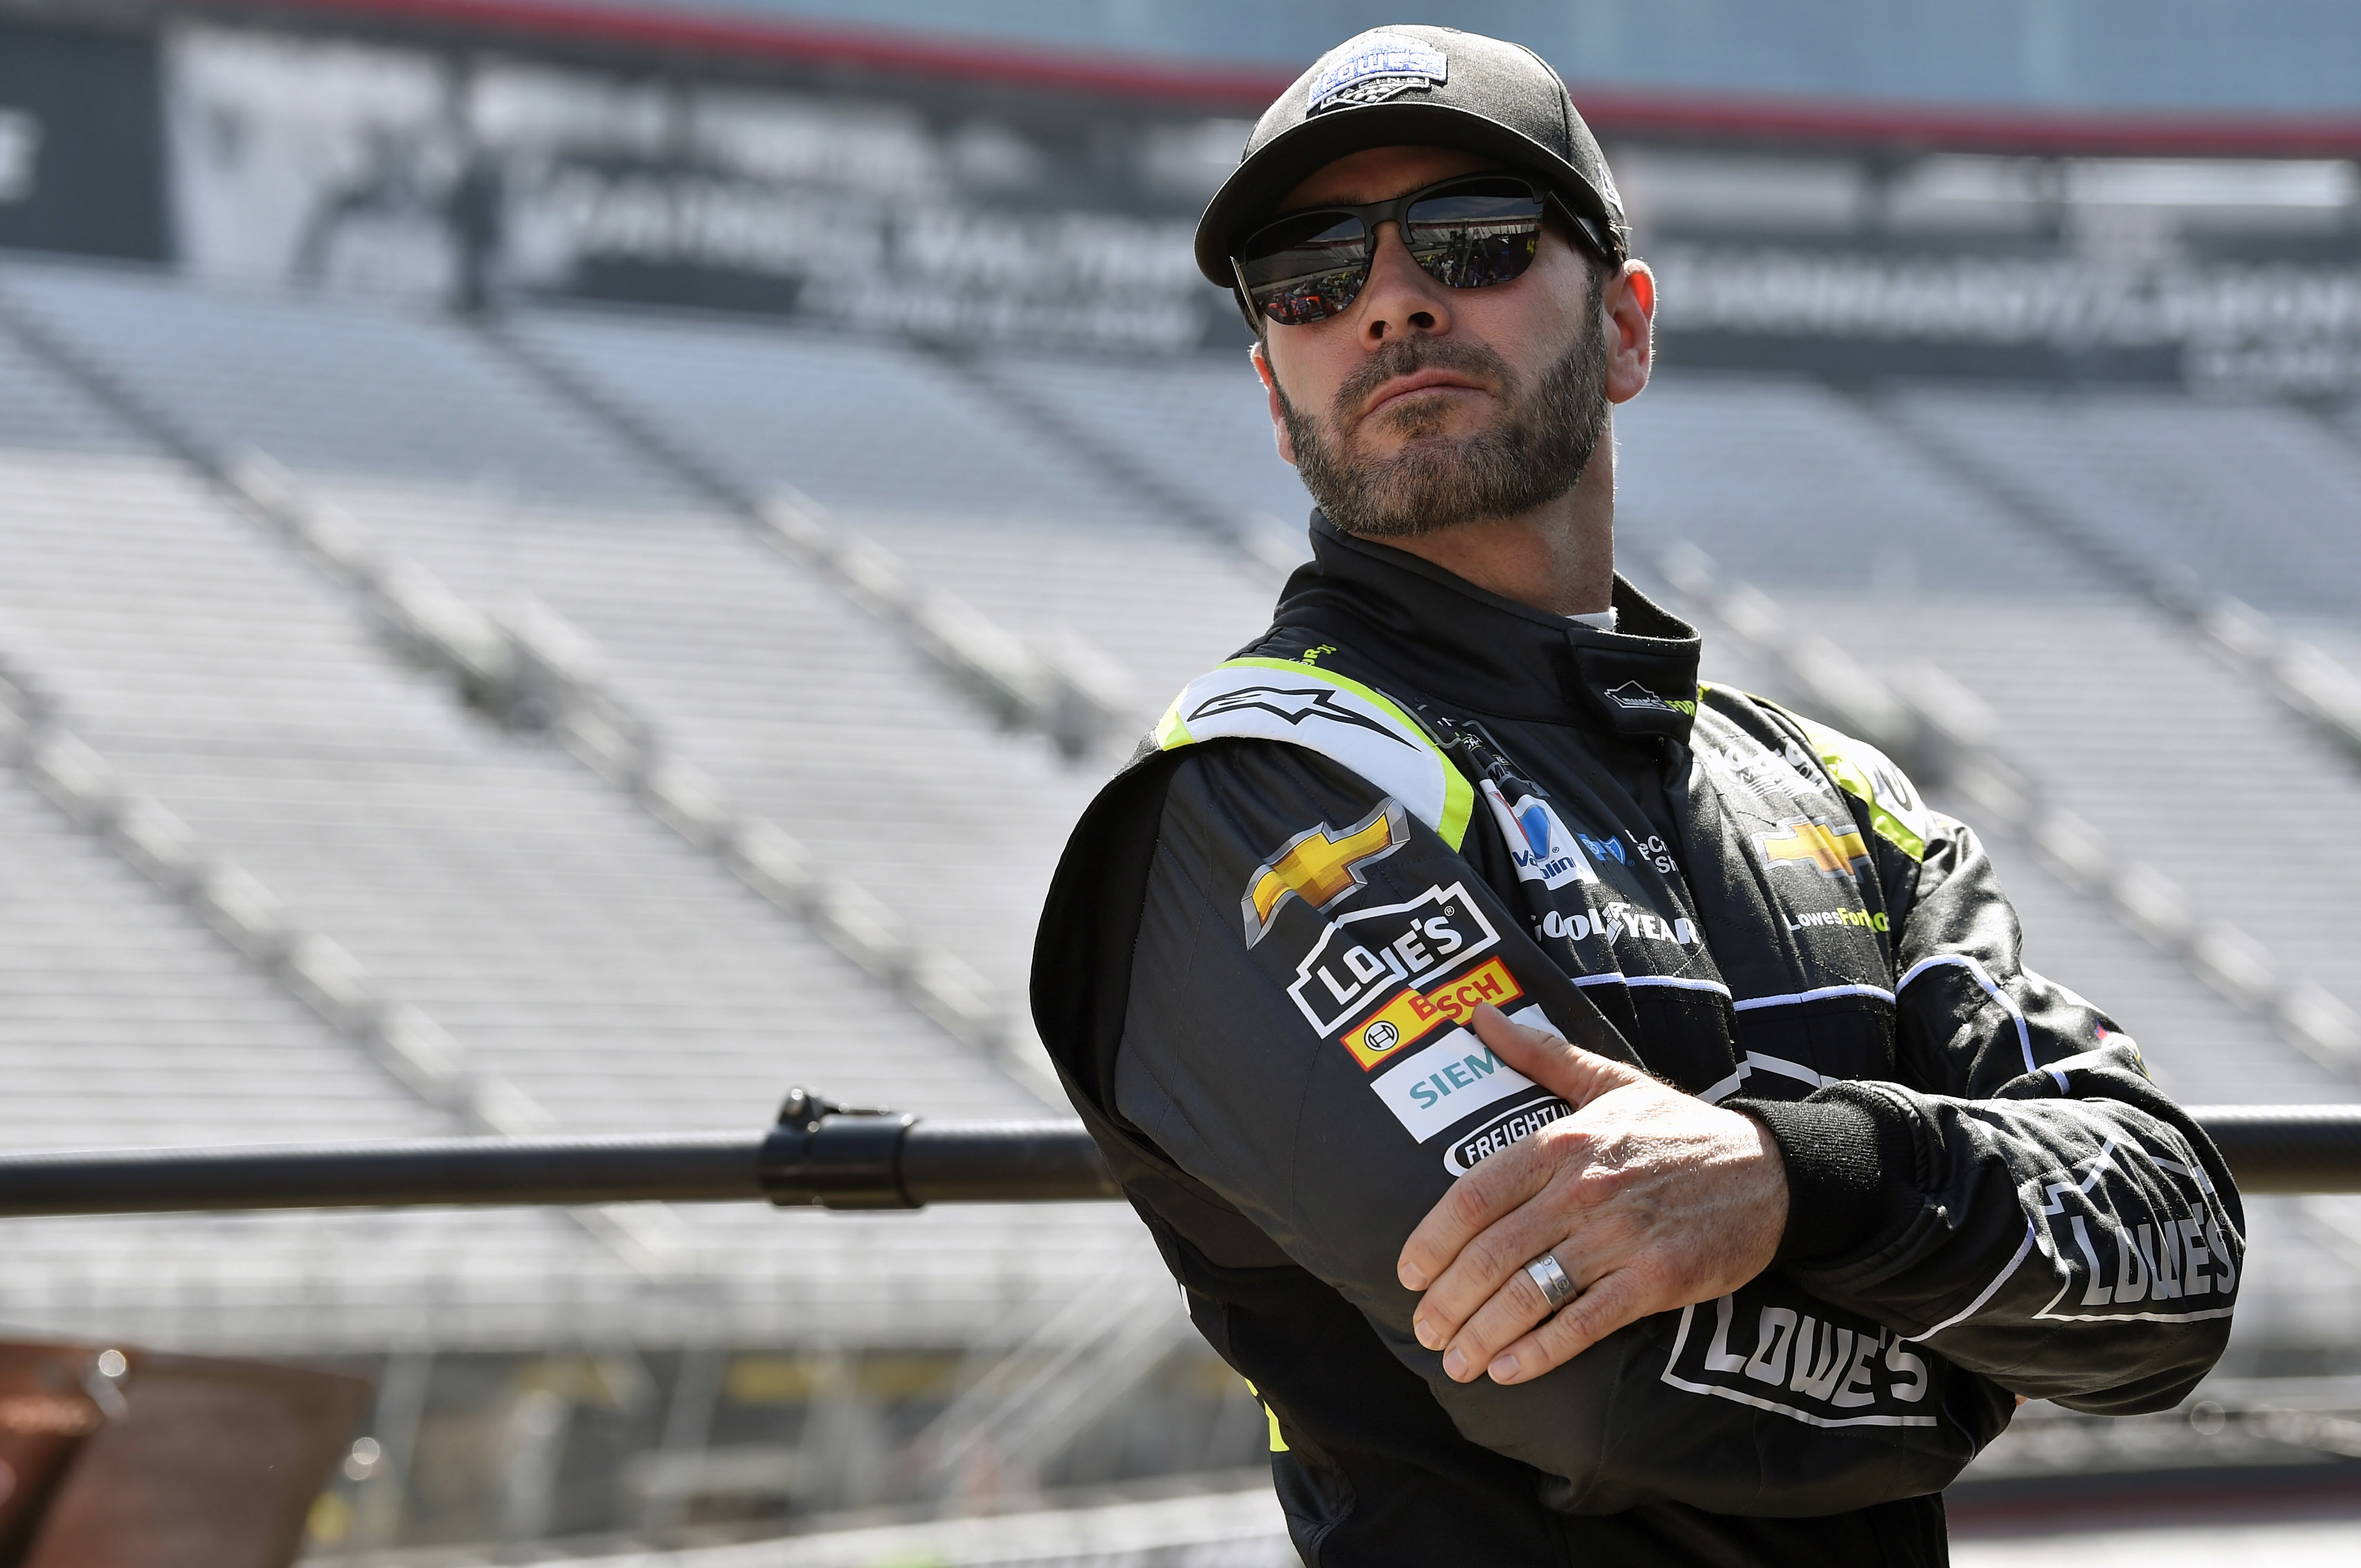 best nascar driver of all time